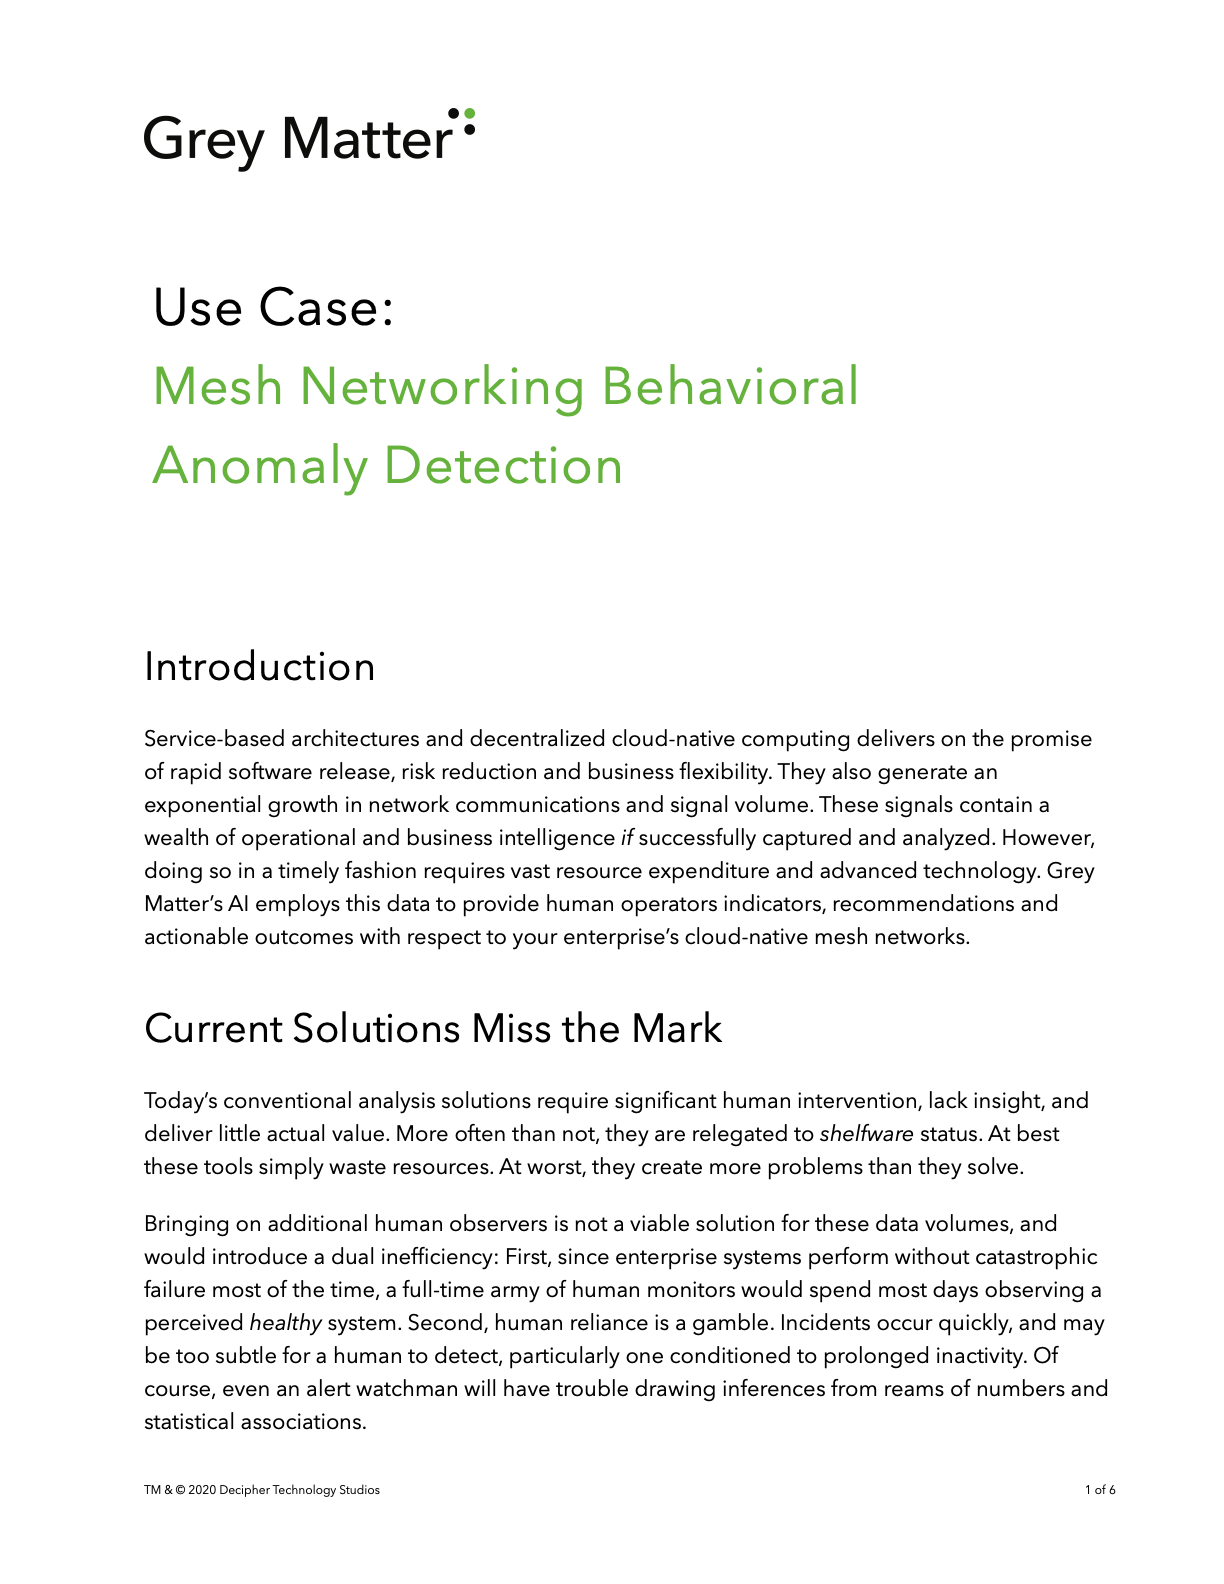 Article describing Grey Matter's benefits through mesh networking behavioral anomaly detection.